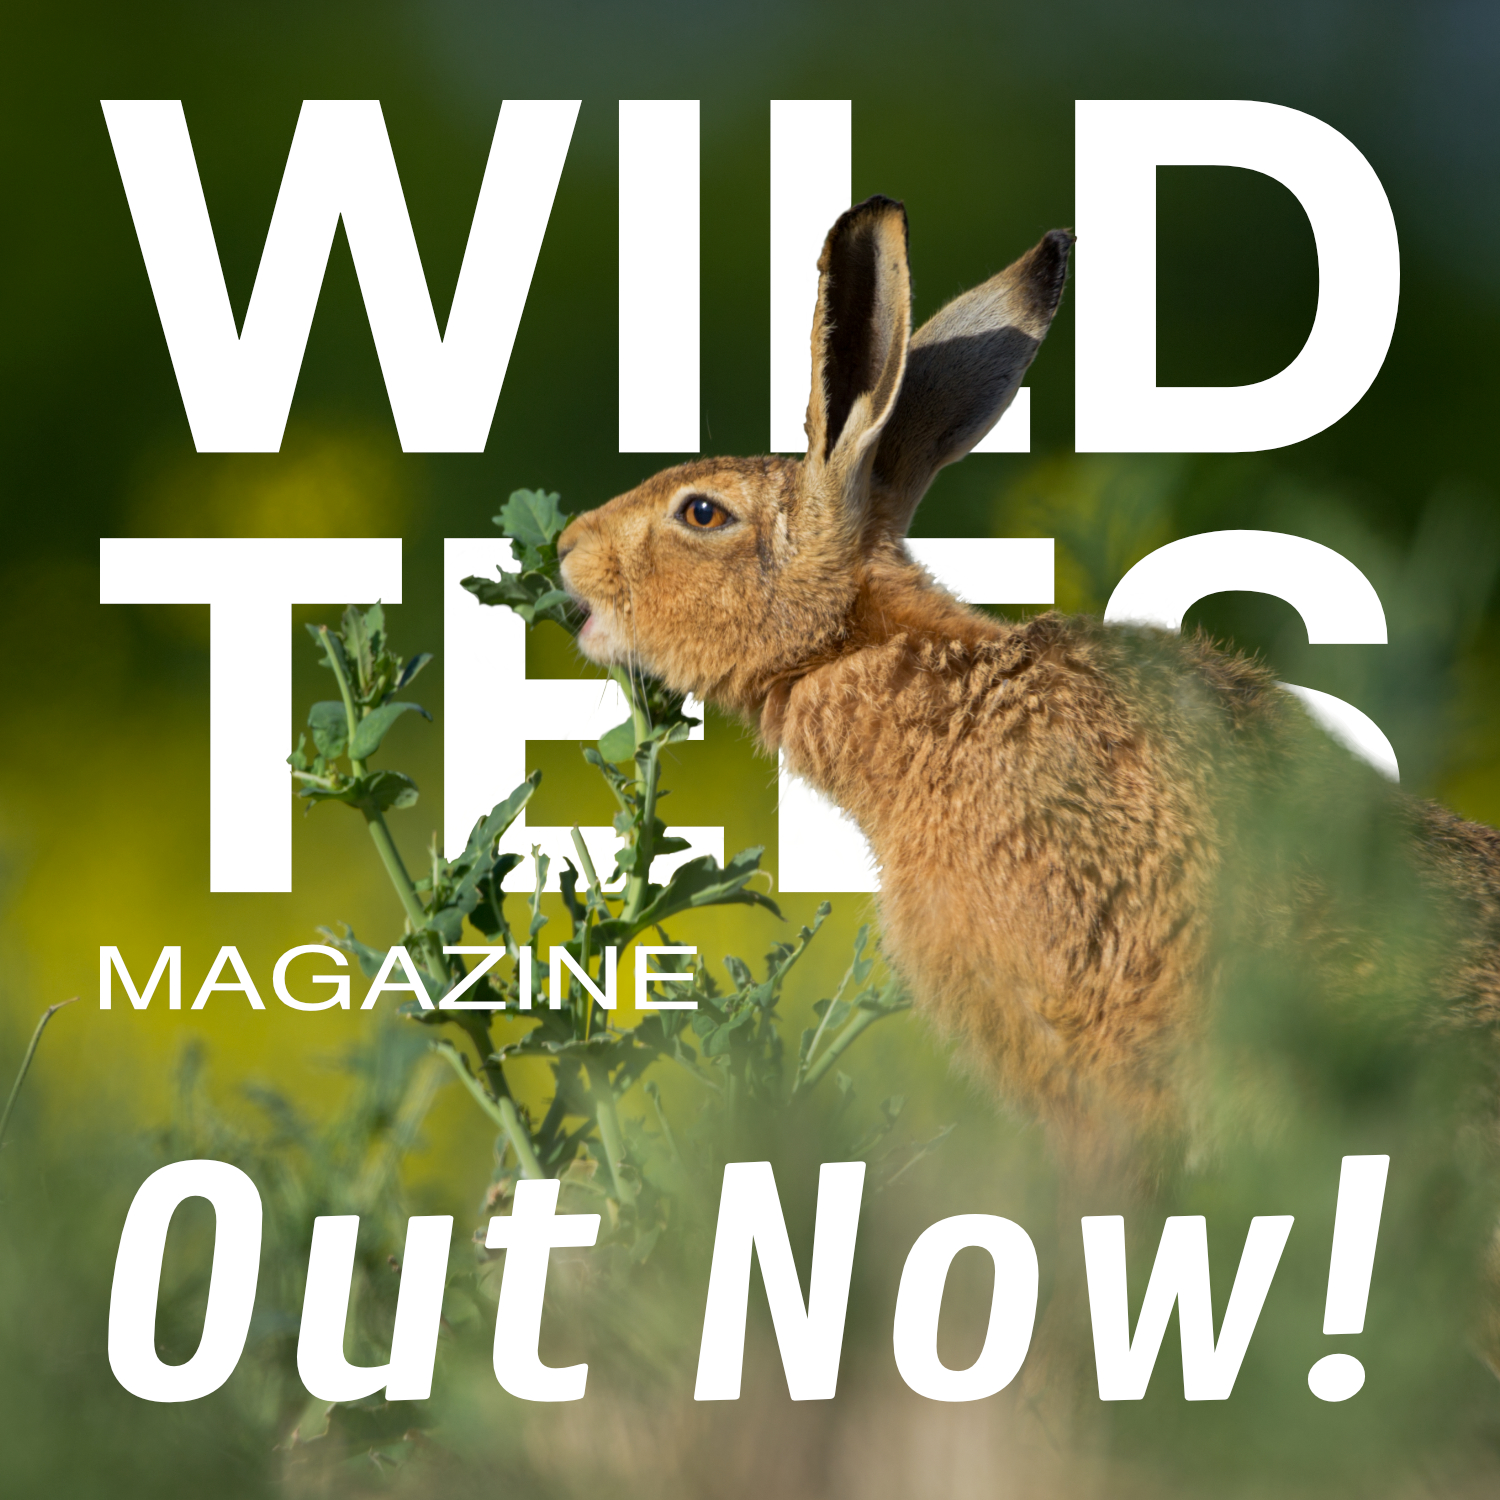 A hare nibbling on green leaves in a field. Text says Wild Tees Magazine - Out Now!